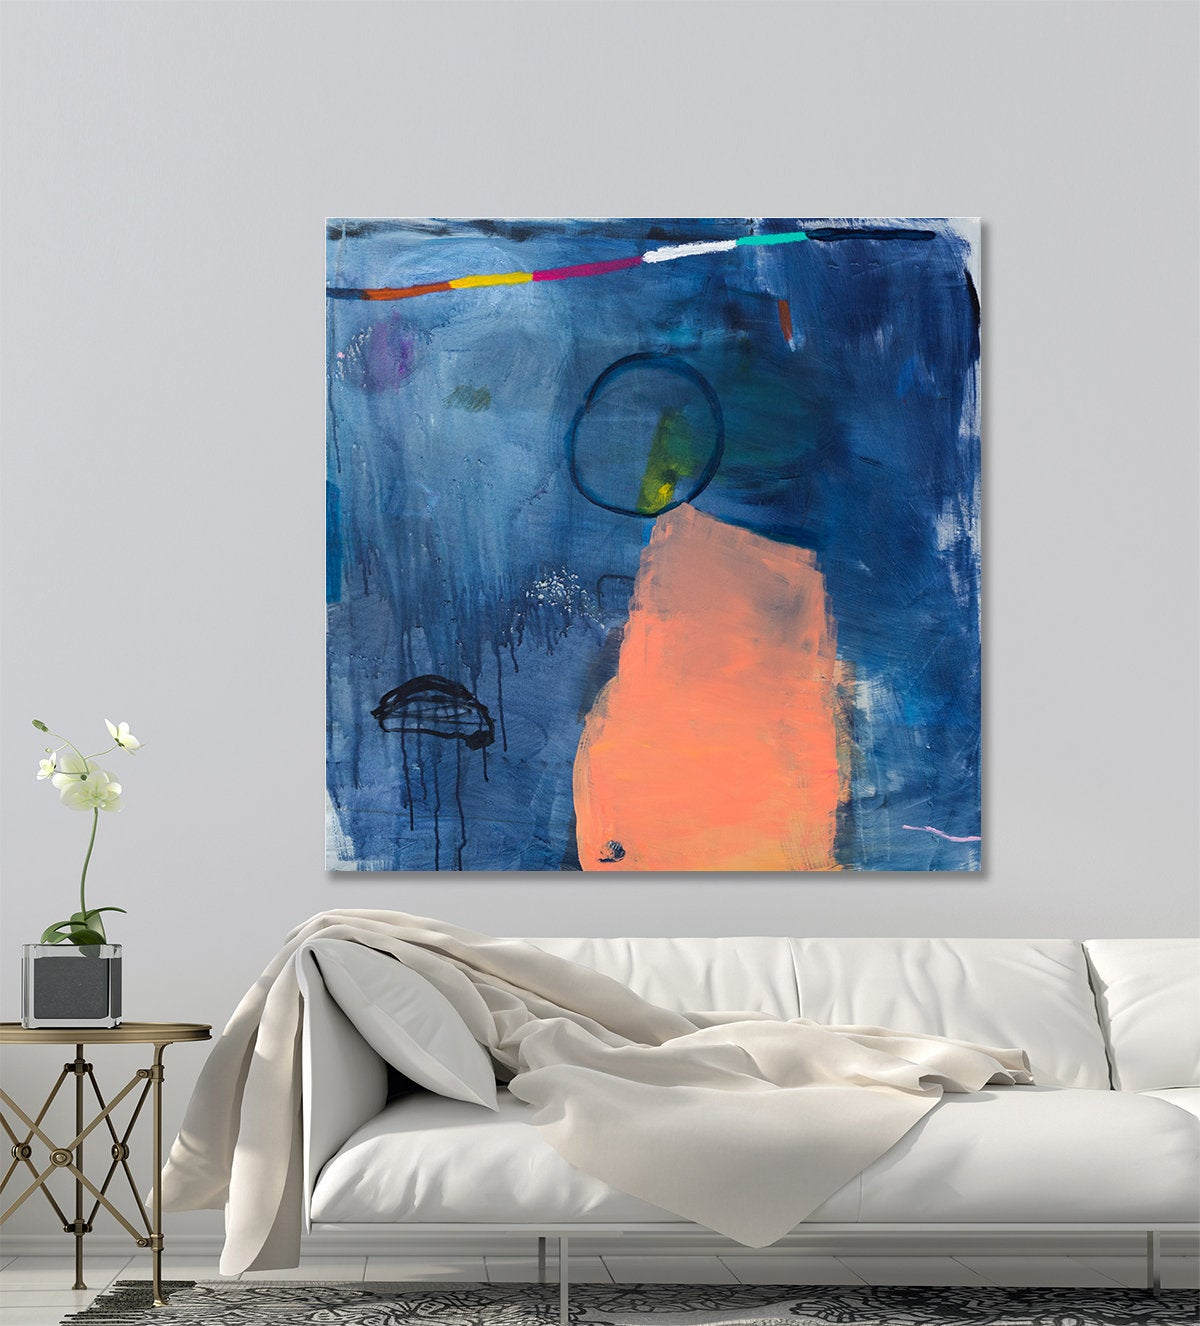 Indigo Blue Wall Art.Abstract Painting Original Canvas Painting Indigo Blue Contemporary Art Bedroom Wall Art By Duealberi